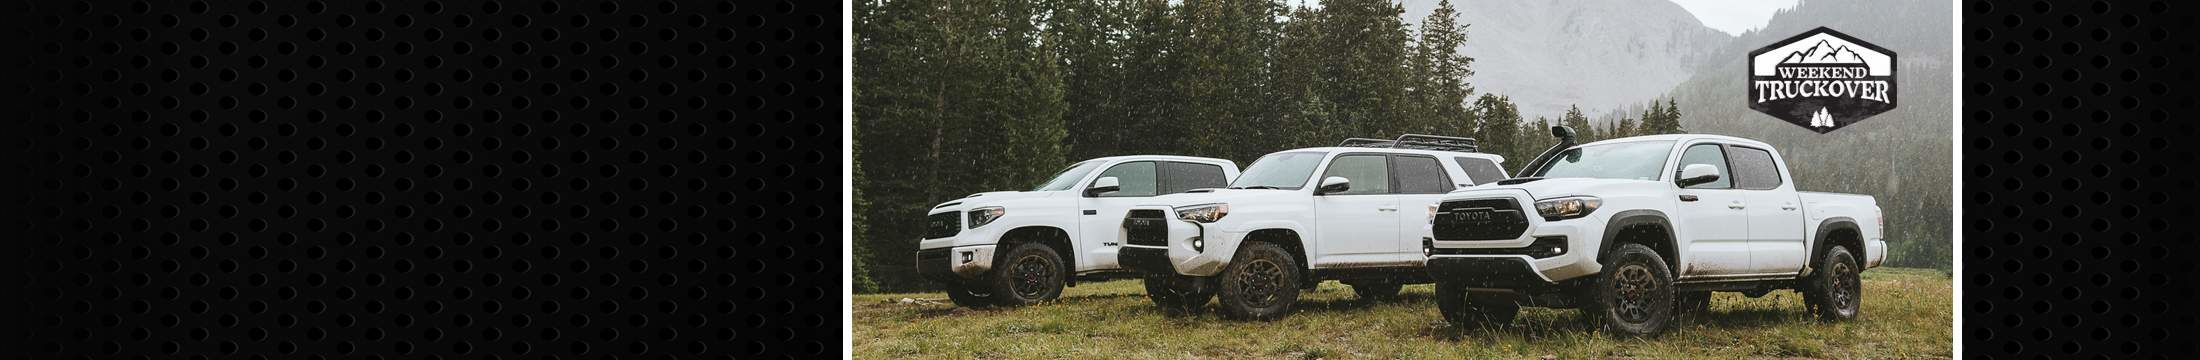 Toyota's Weekend Truckover Contest